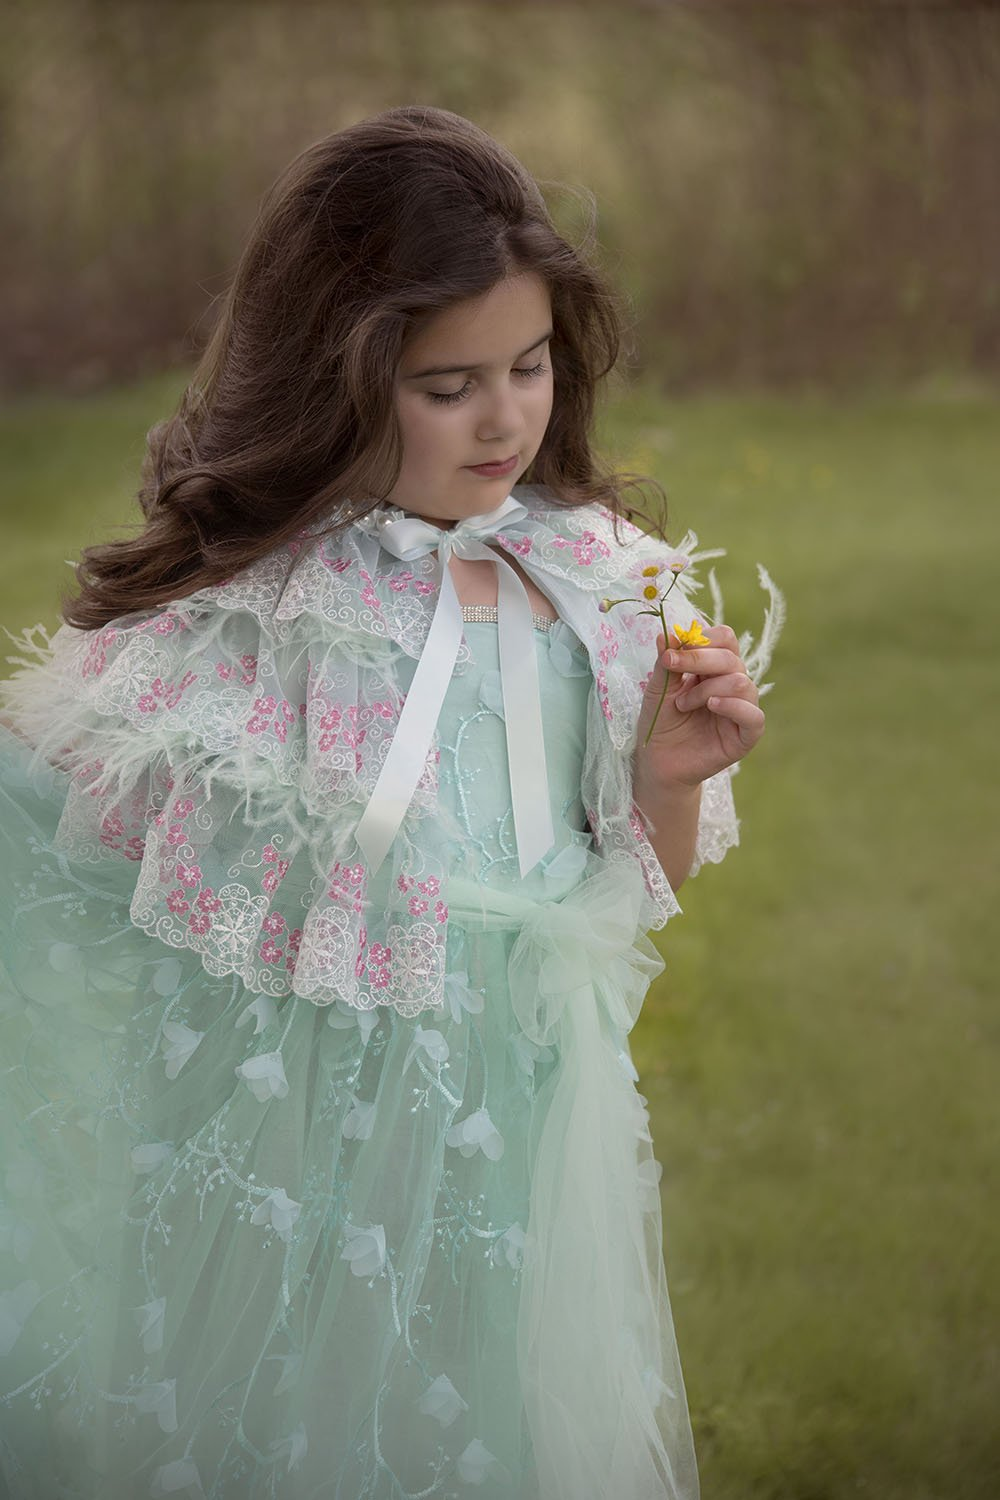 Pretty girl wearing Sabinna Deluxe Lace Feathers Mint Girl Fashion Cape-by Miele Moda Boutique